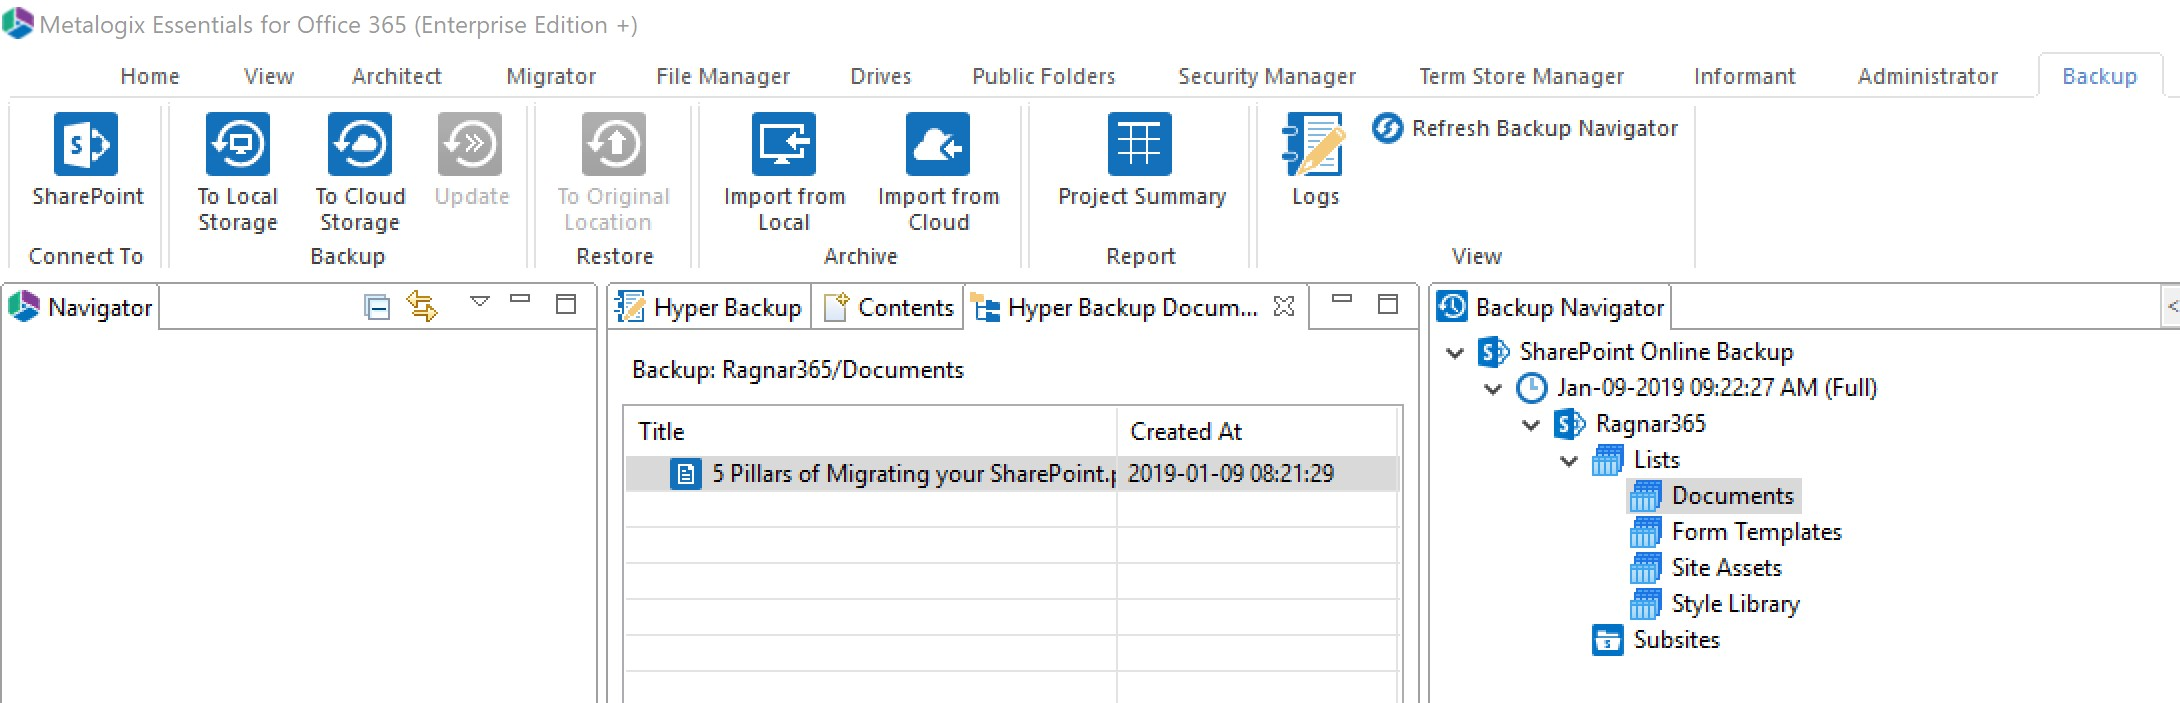 essentials for office 365 backup